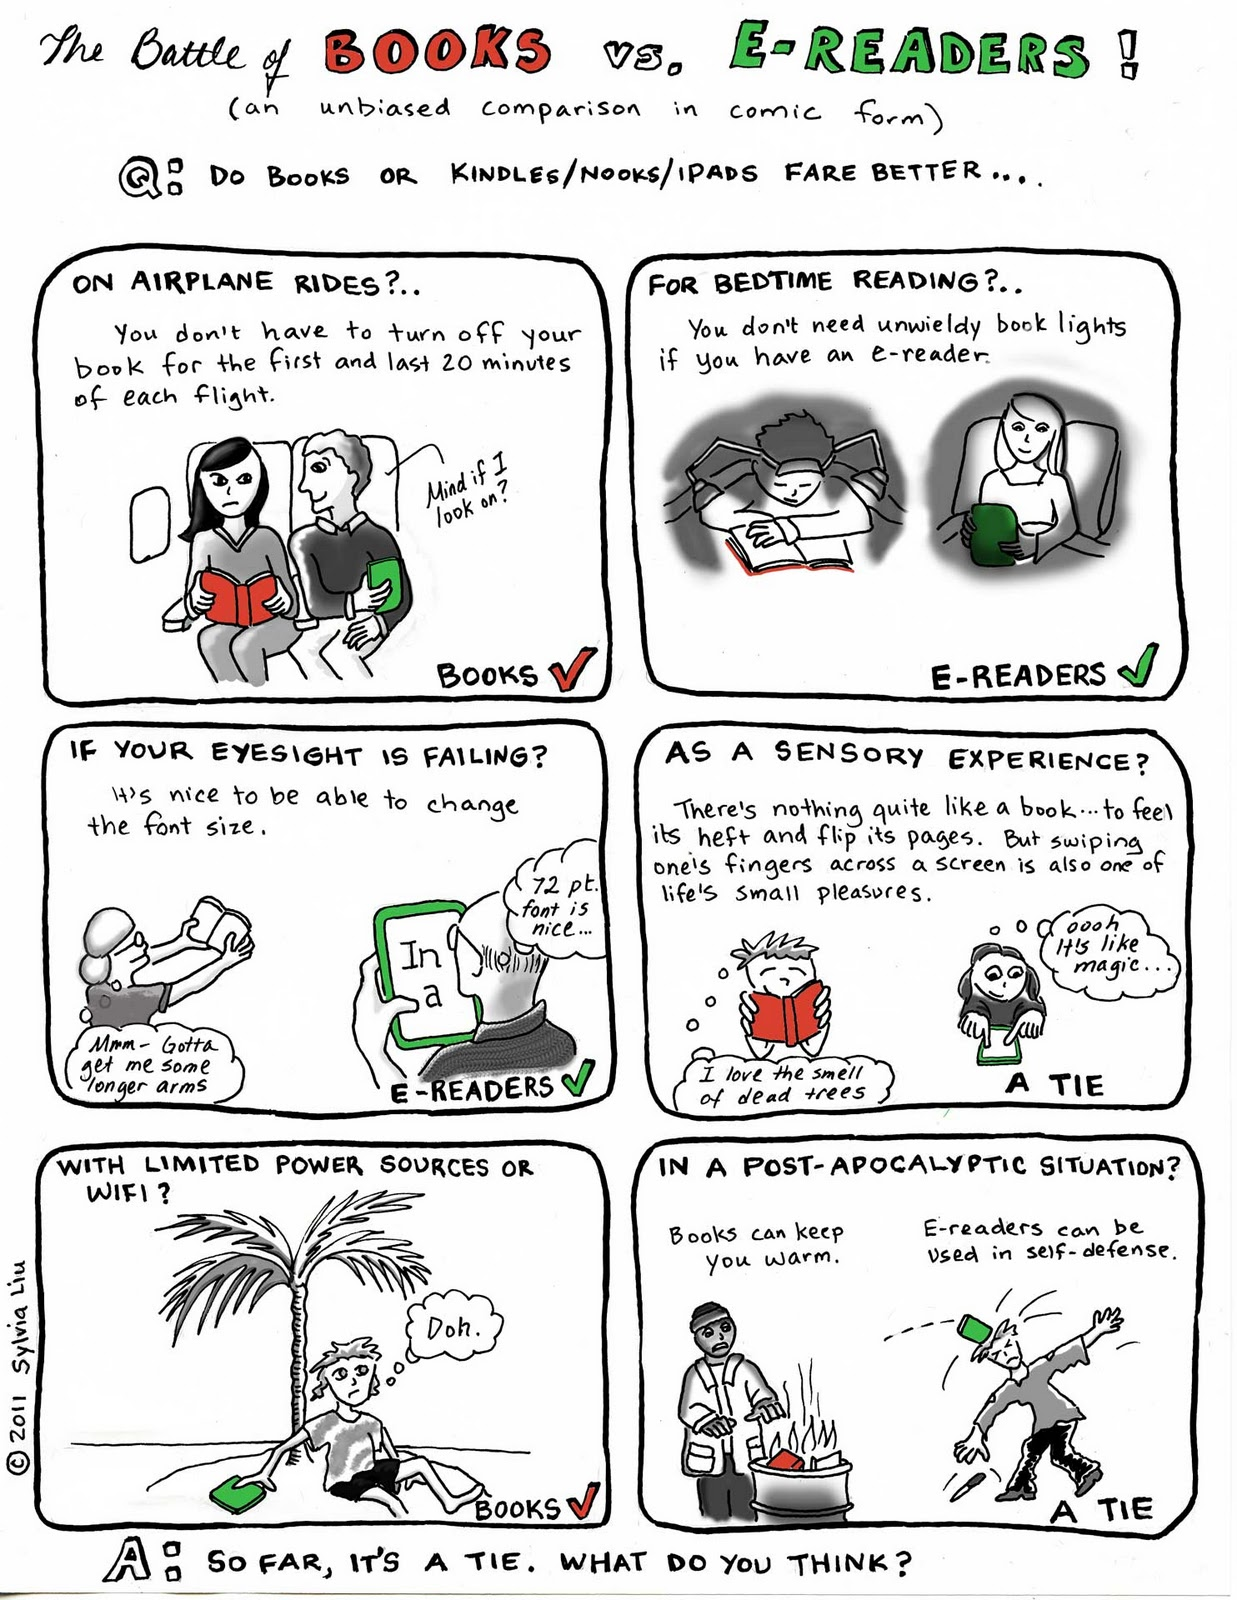 Cartoon About Relative Merits Of Books And Ereaders